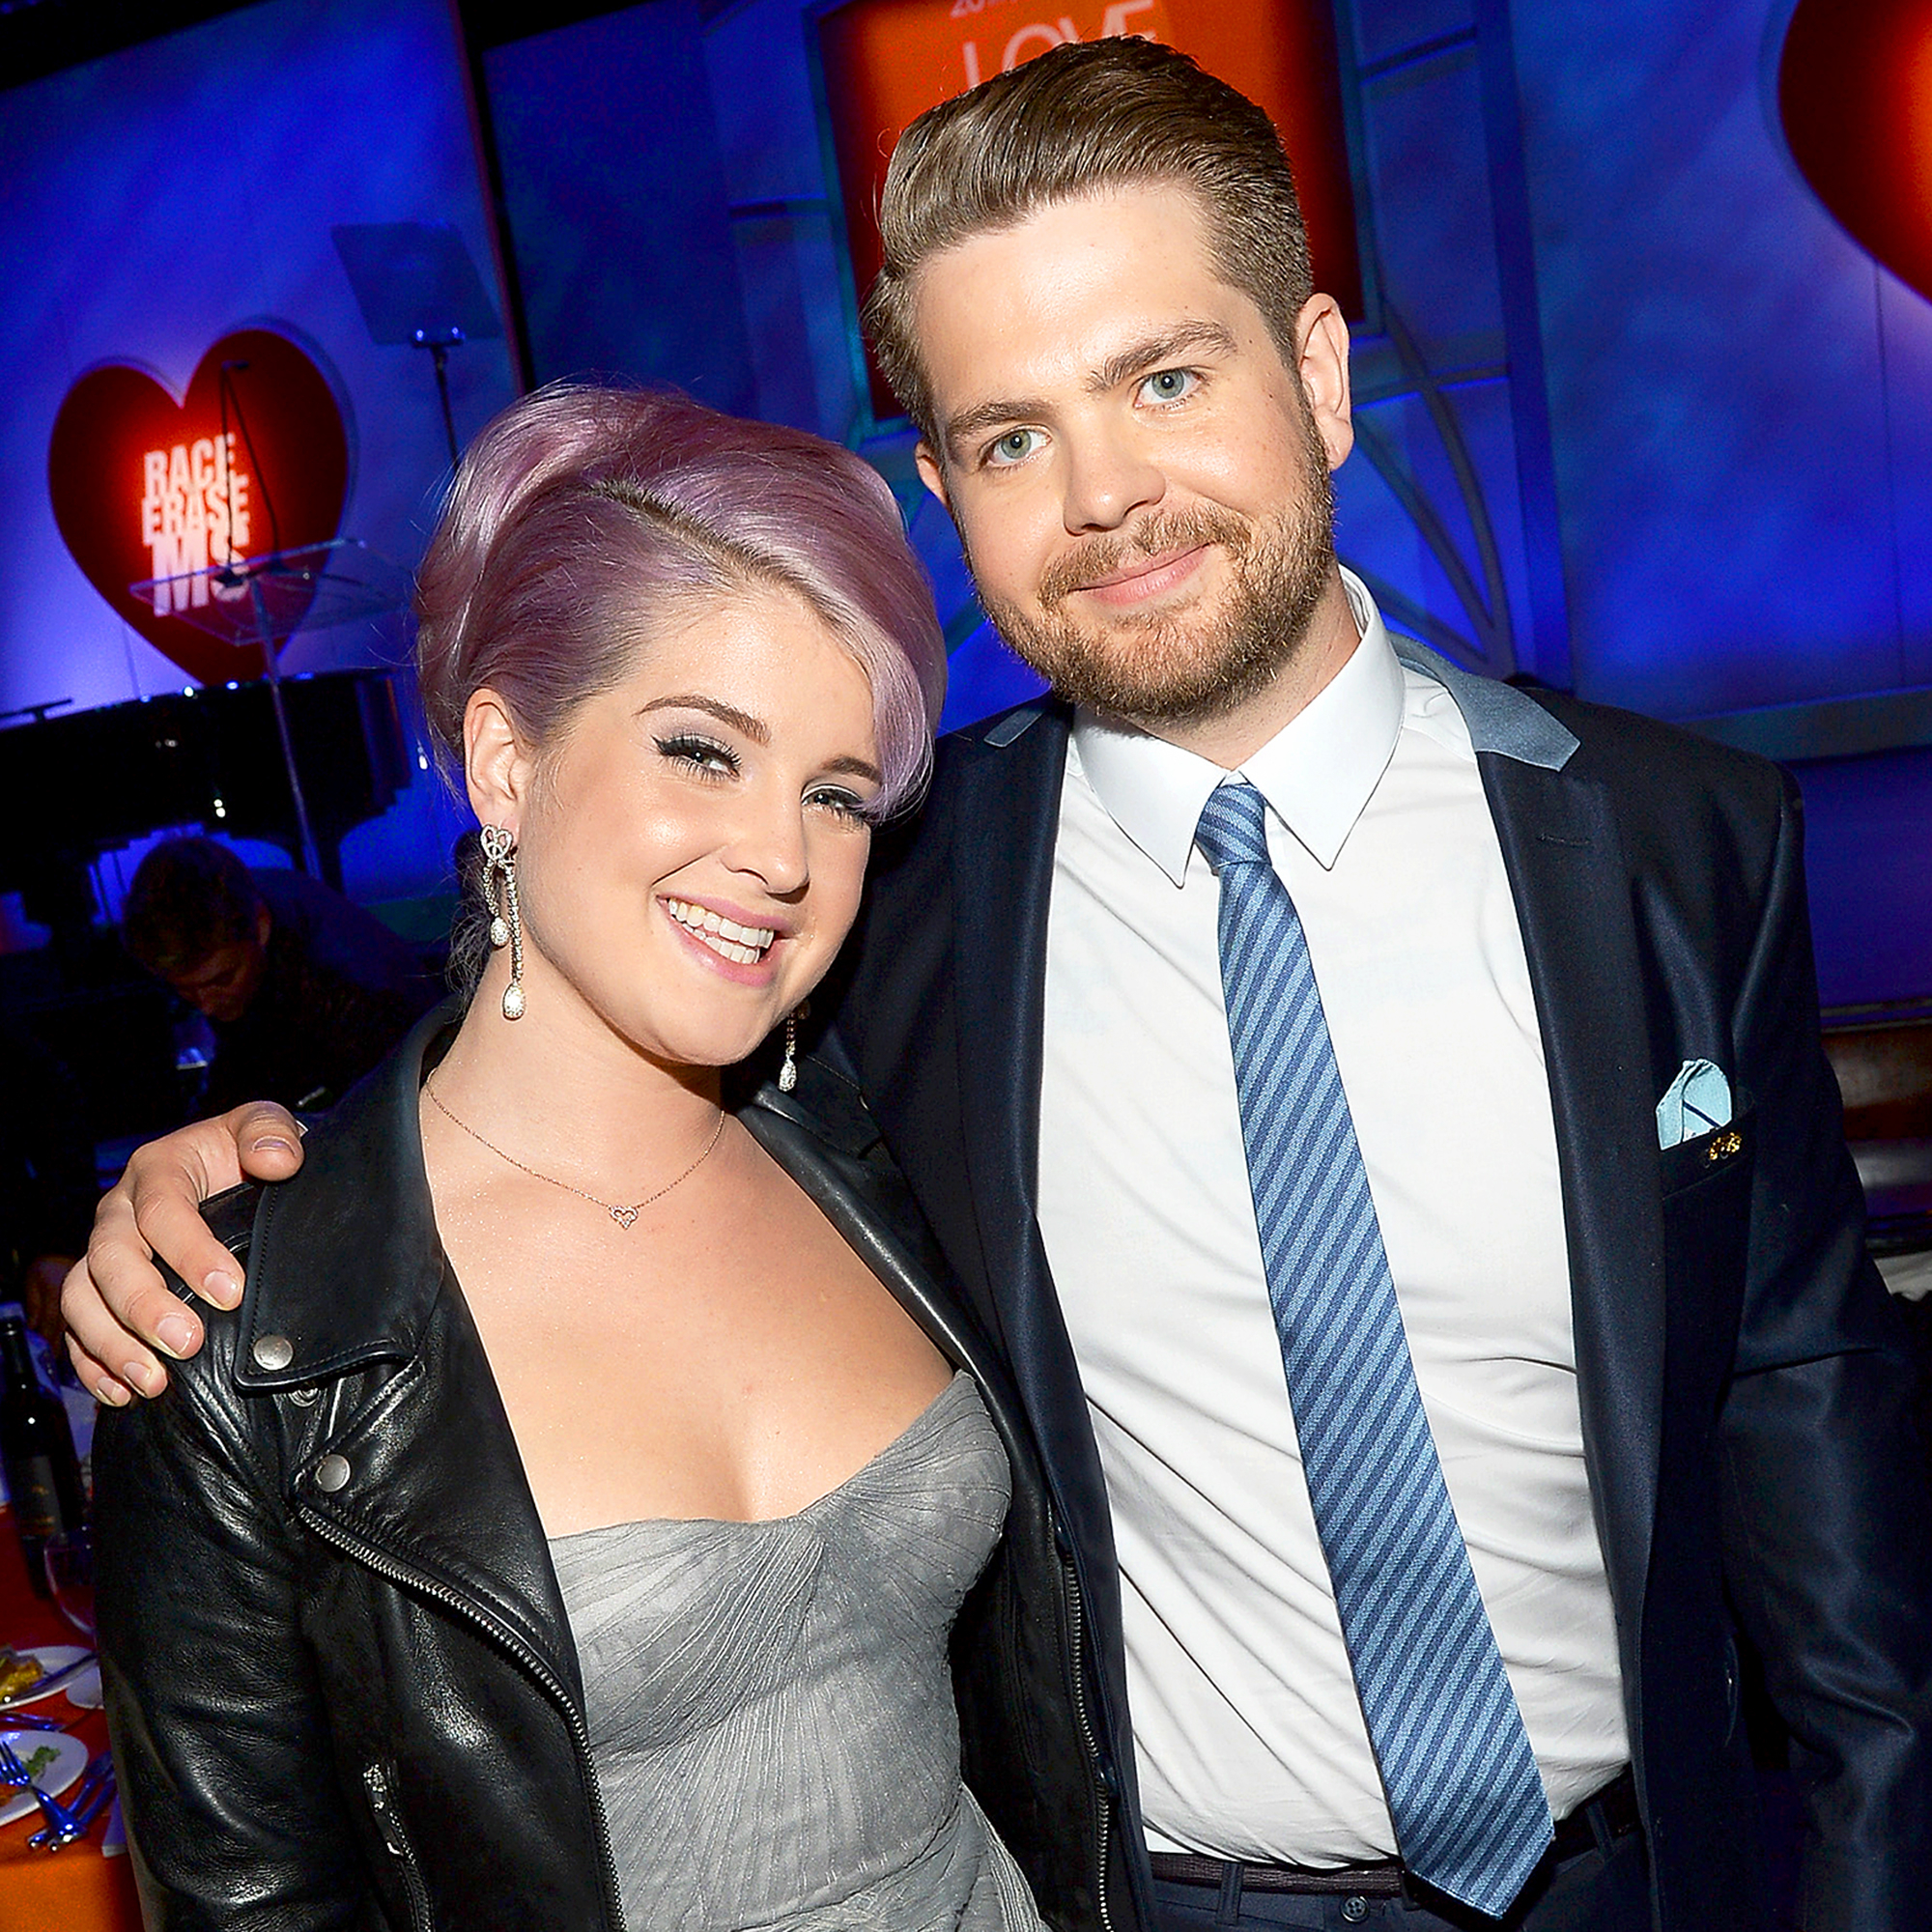 Kelly Osbourne and Jack Osbourne